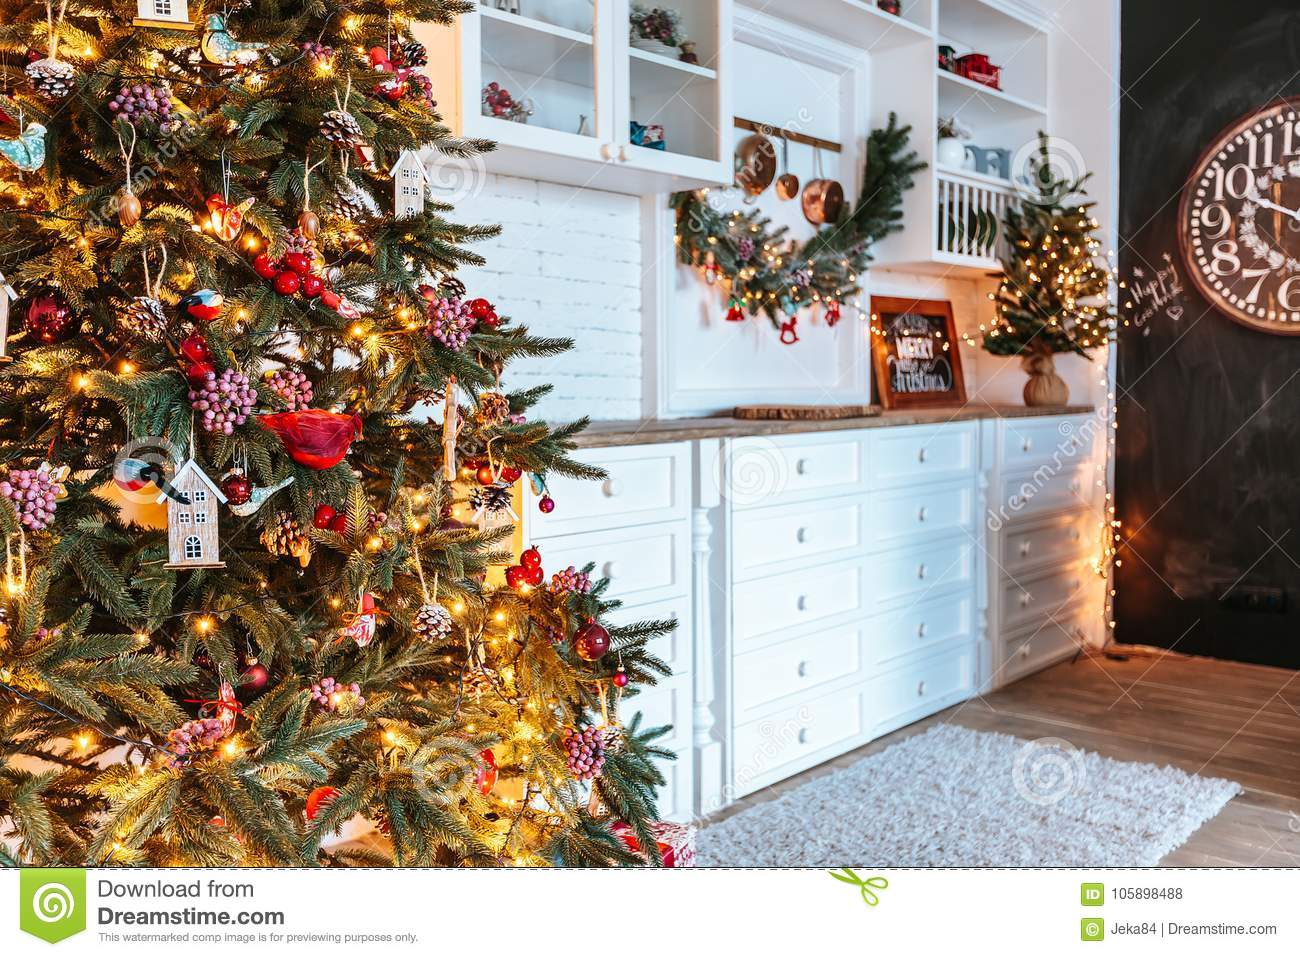 beautiful living rooms at christmas designing room with a tree gifts and clock new year decorated classic home interior